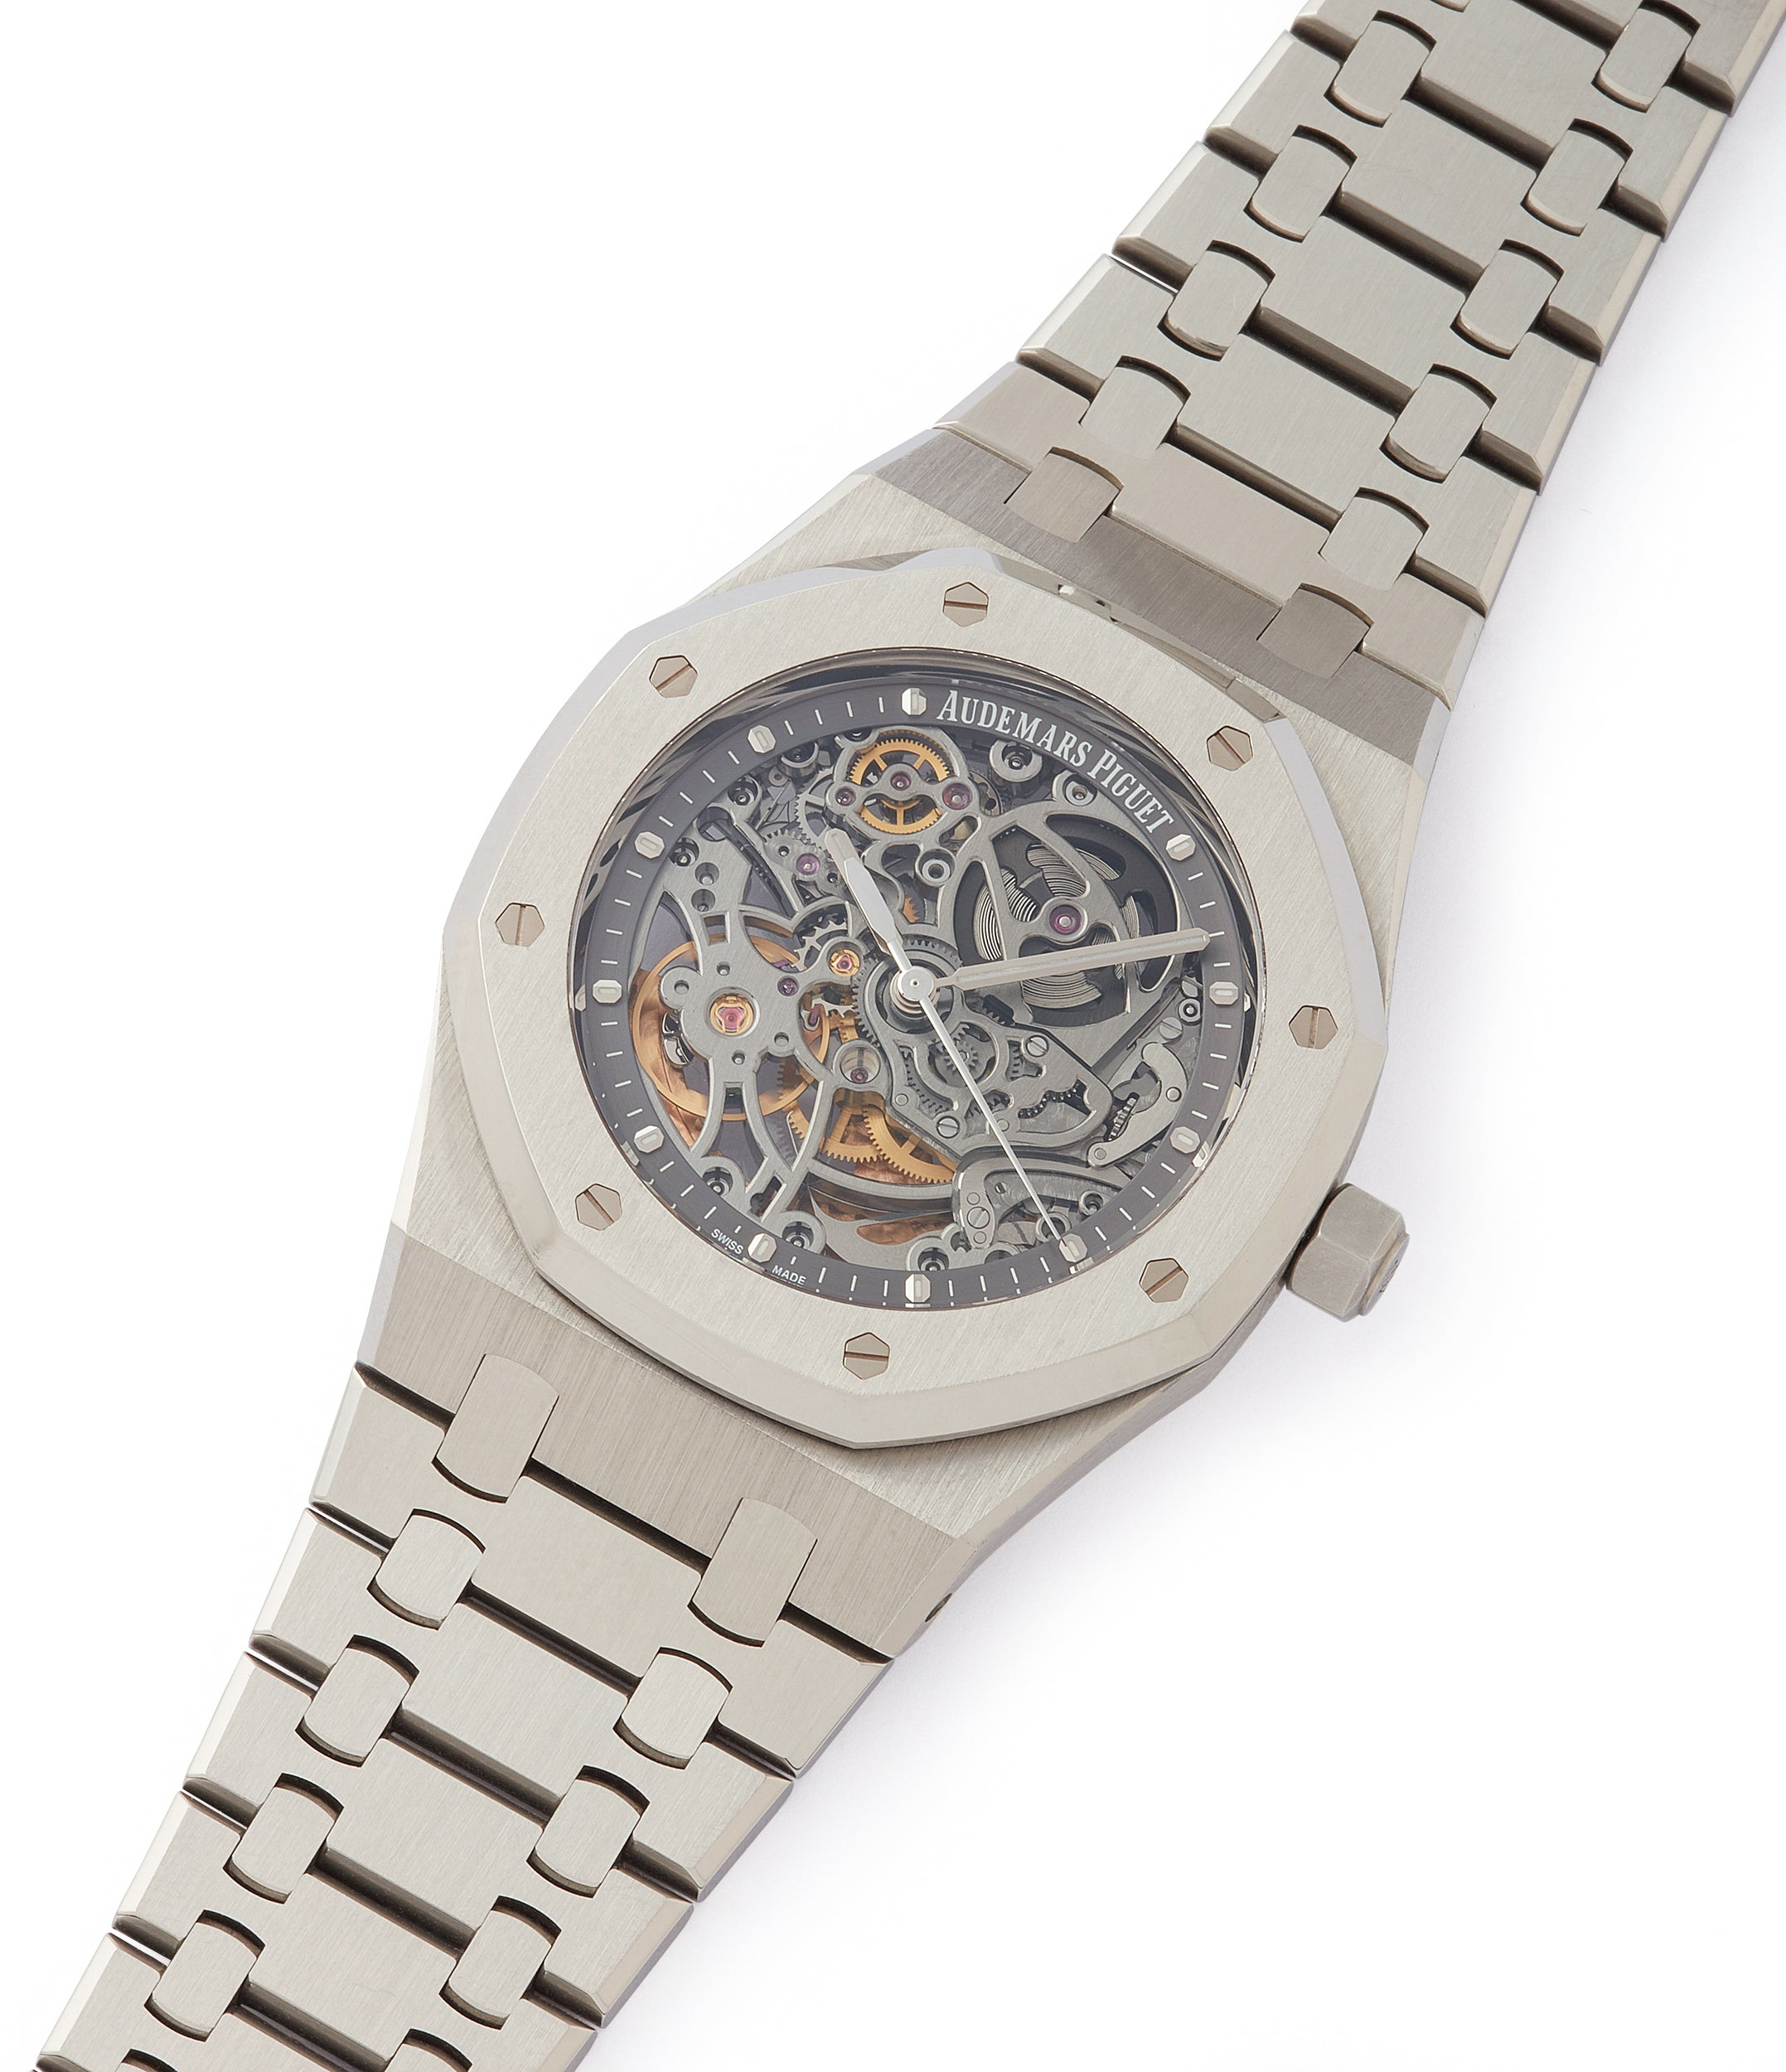 selling Audemars Piguet Royal Oak skeletonised 15305ST steel watch for sale online at A Collected Man London UK specialist of rare watches